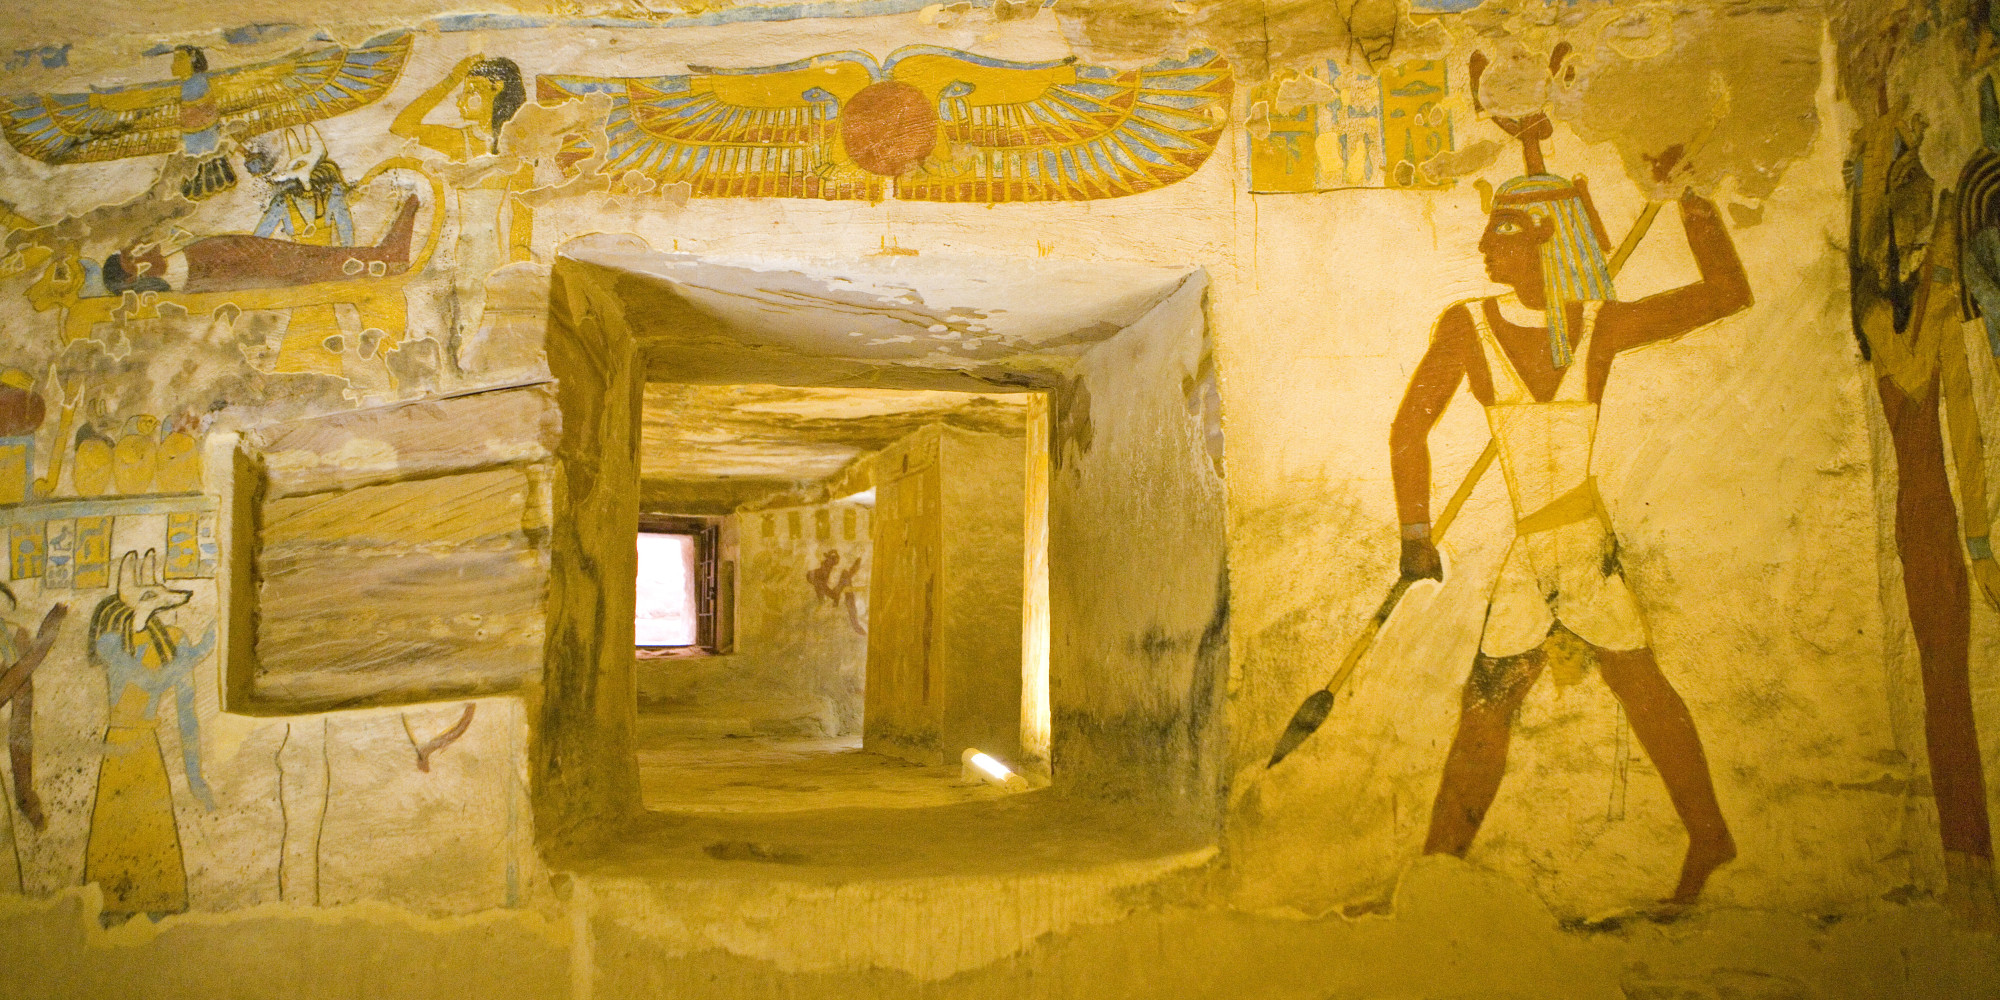 archaeologists stumbled upon missing tomb of god osiris in egypt